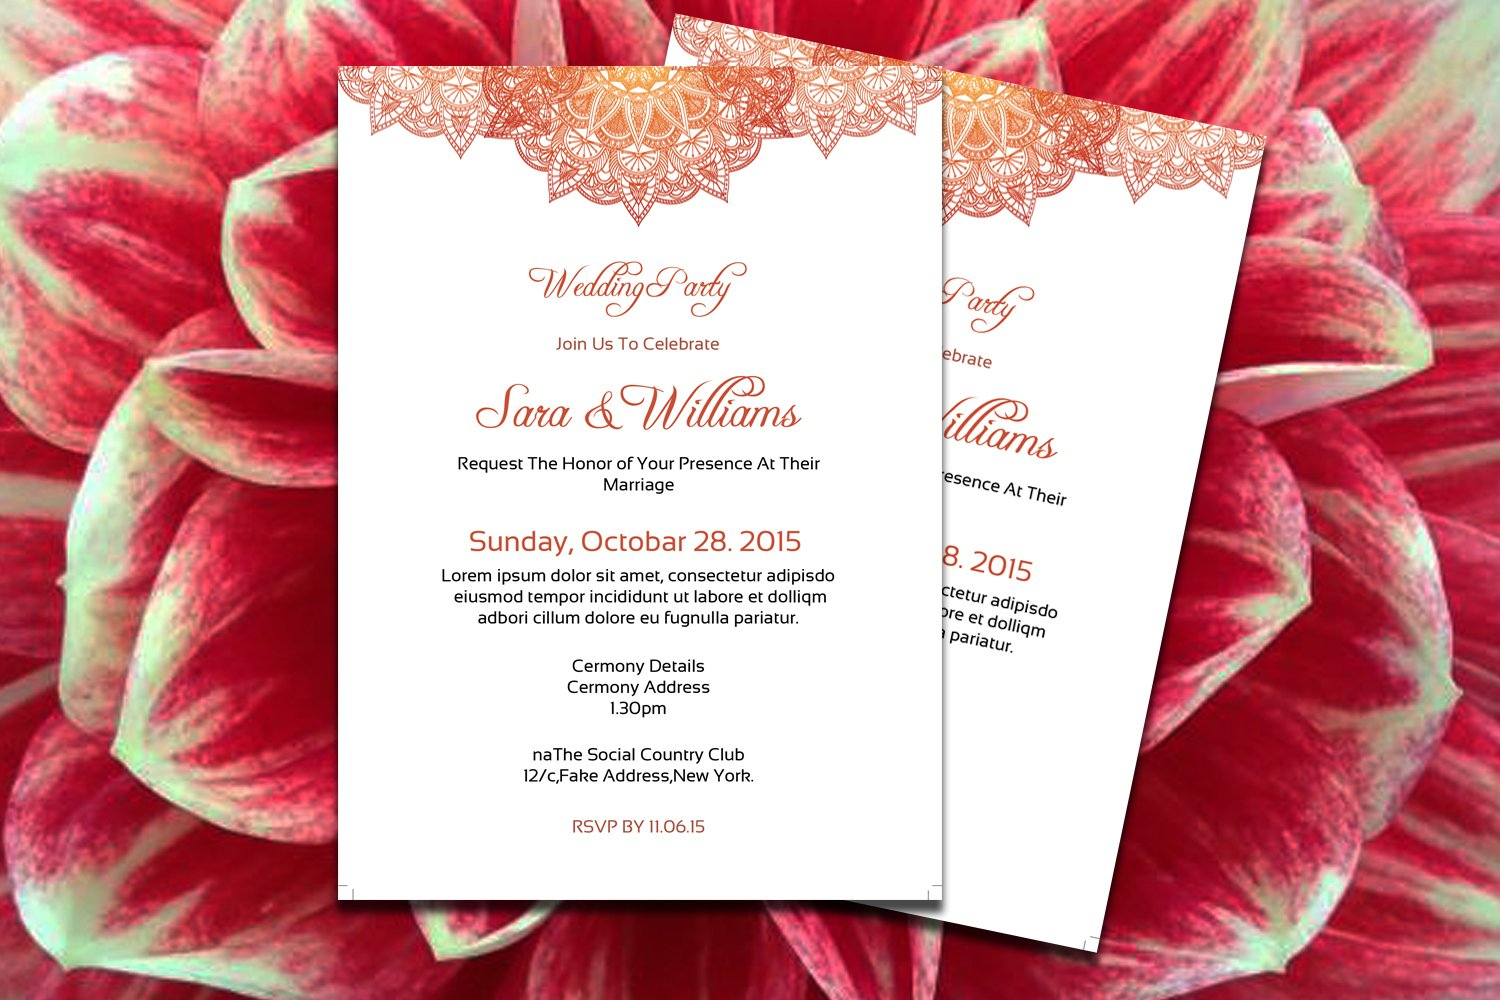 Elegant Wedding Invitation Template ~ Invitation Templates ...